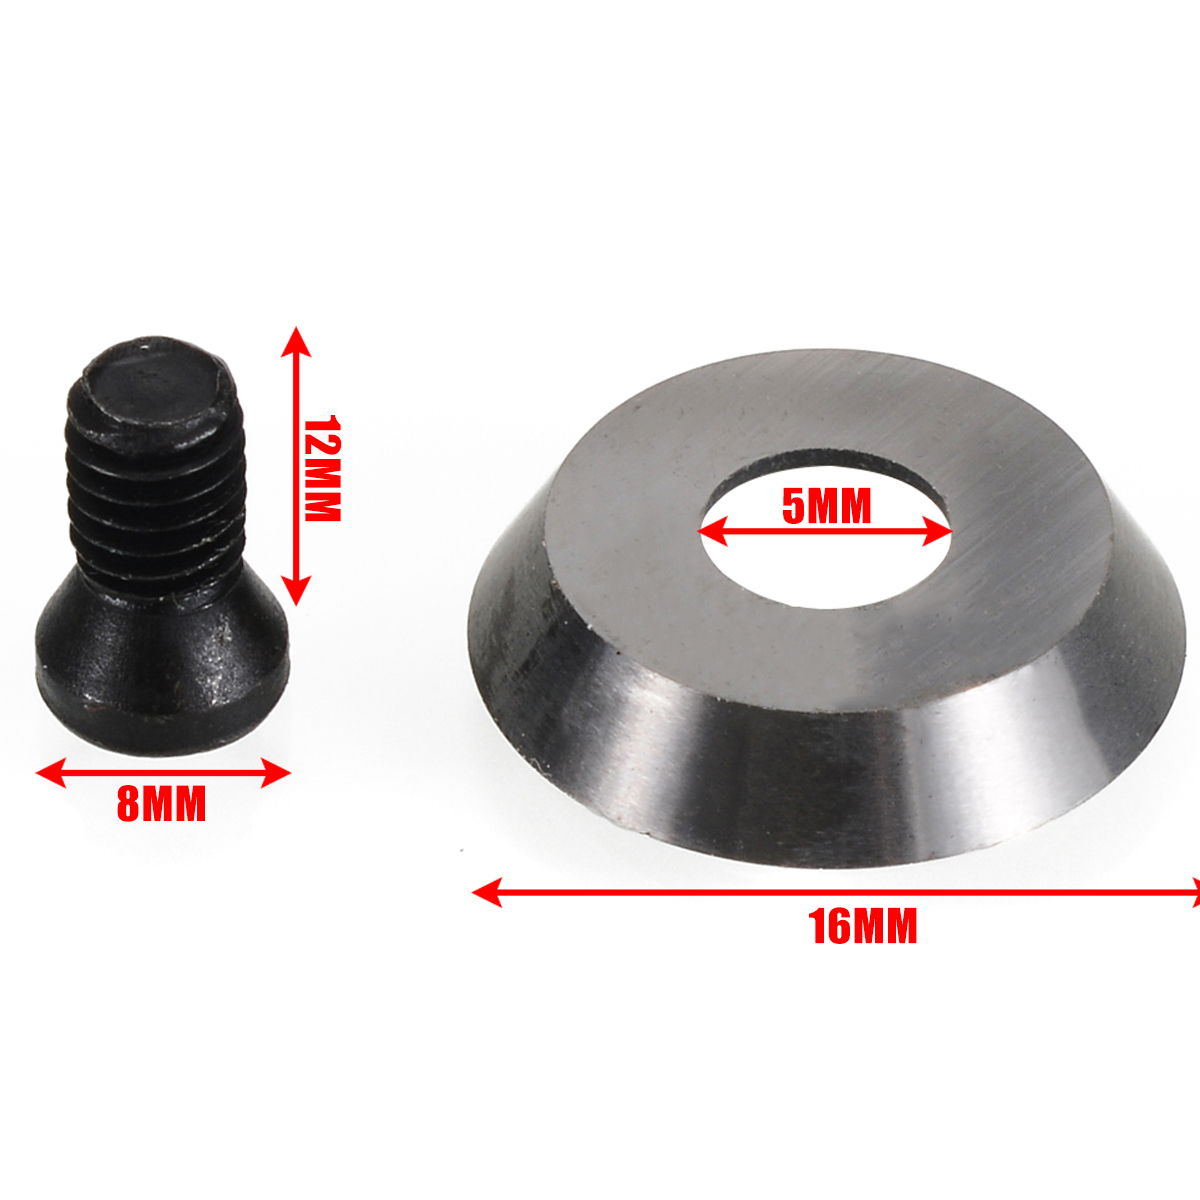 Round Carbide Insert 16mm 16x3-30 Degree Carbide Insert Cutter Finisher Wood Turning Lathe Tool For Wooden Cutting Machine Tools